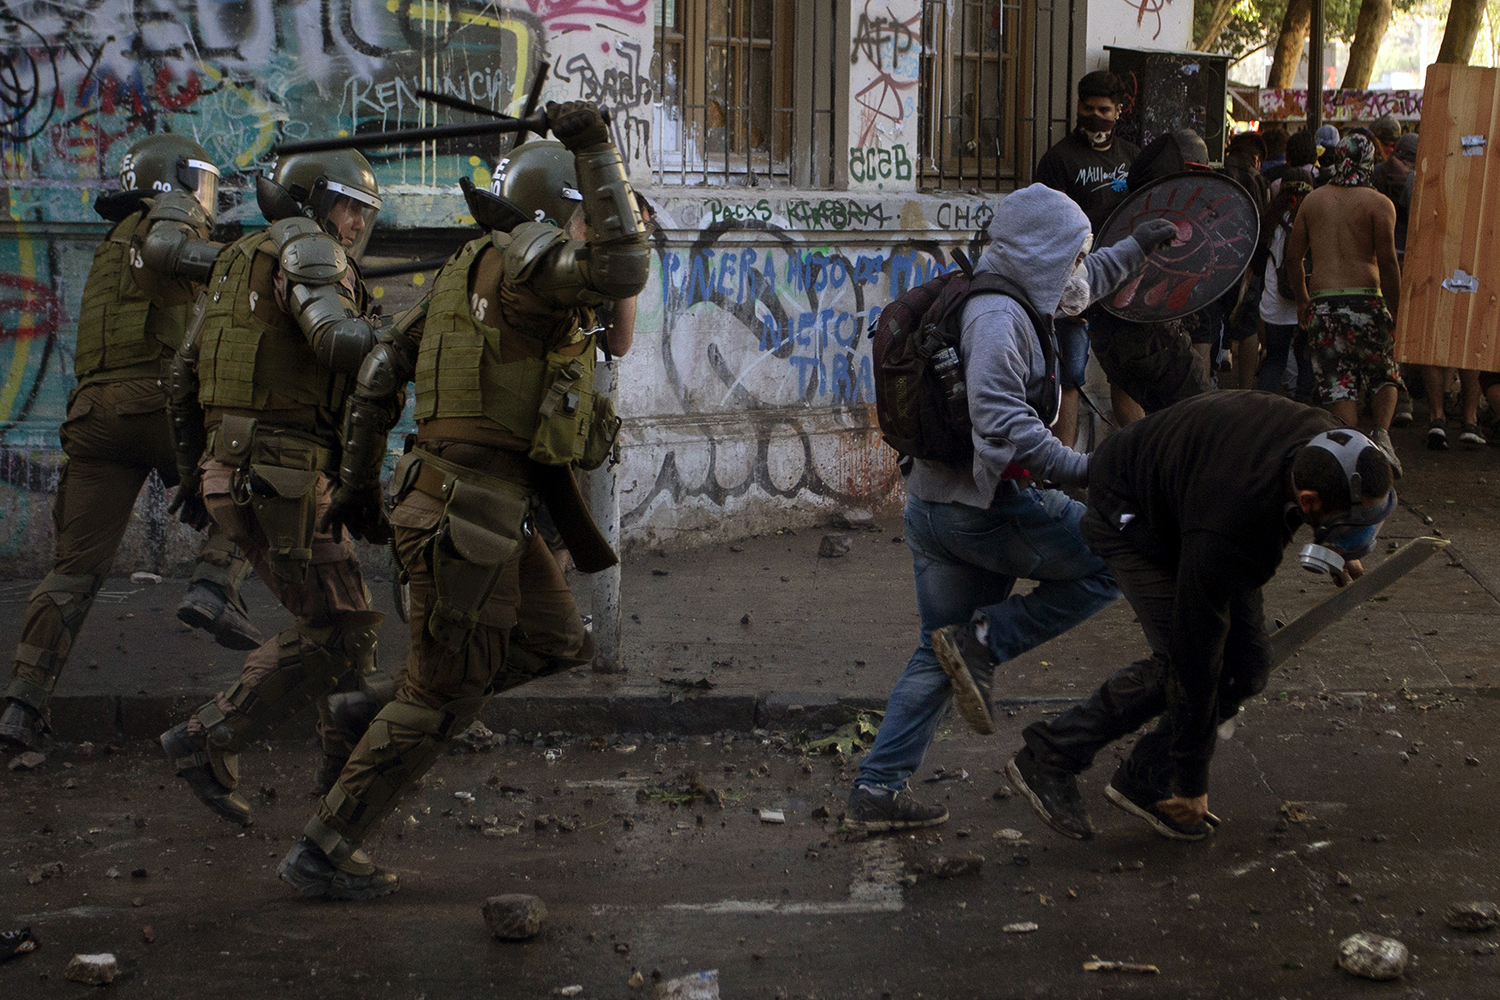 Riot police chase demonstrators during a protest against the government in Santiago on Nov. 19. CLAUDIO REYES/AFP via Getty Images